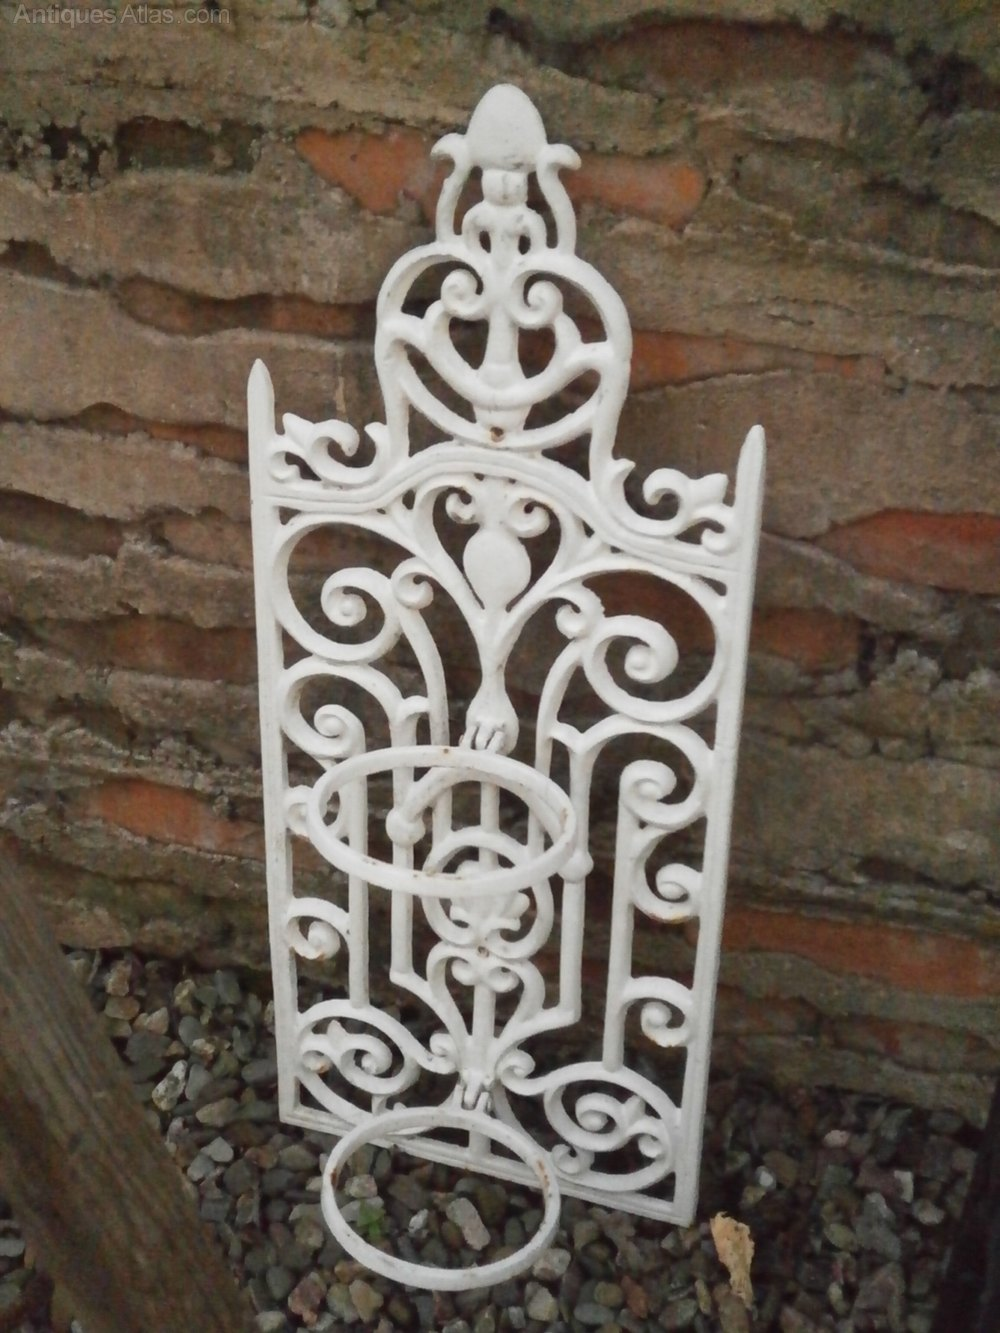 Antiques Atlas - Vintage French Wrought Iron Wall Hanging ... on Iron Wall Vases id=89159